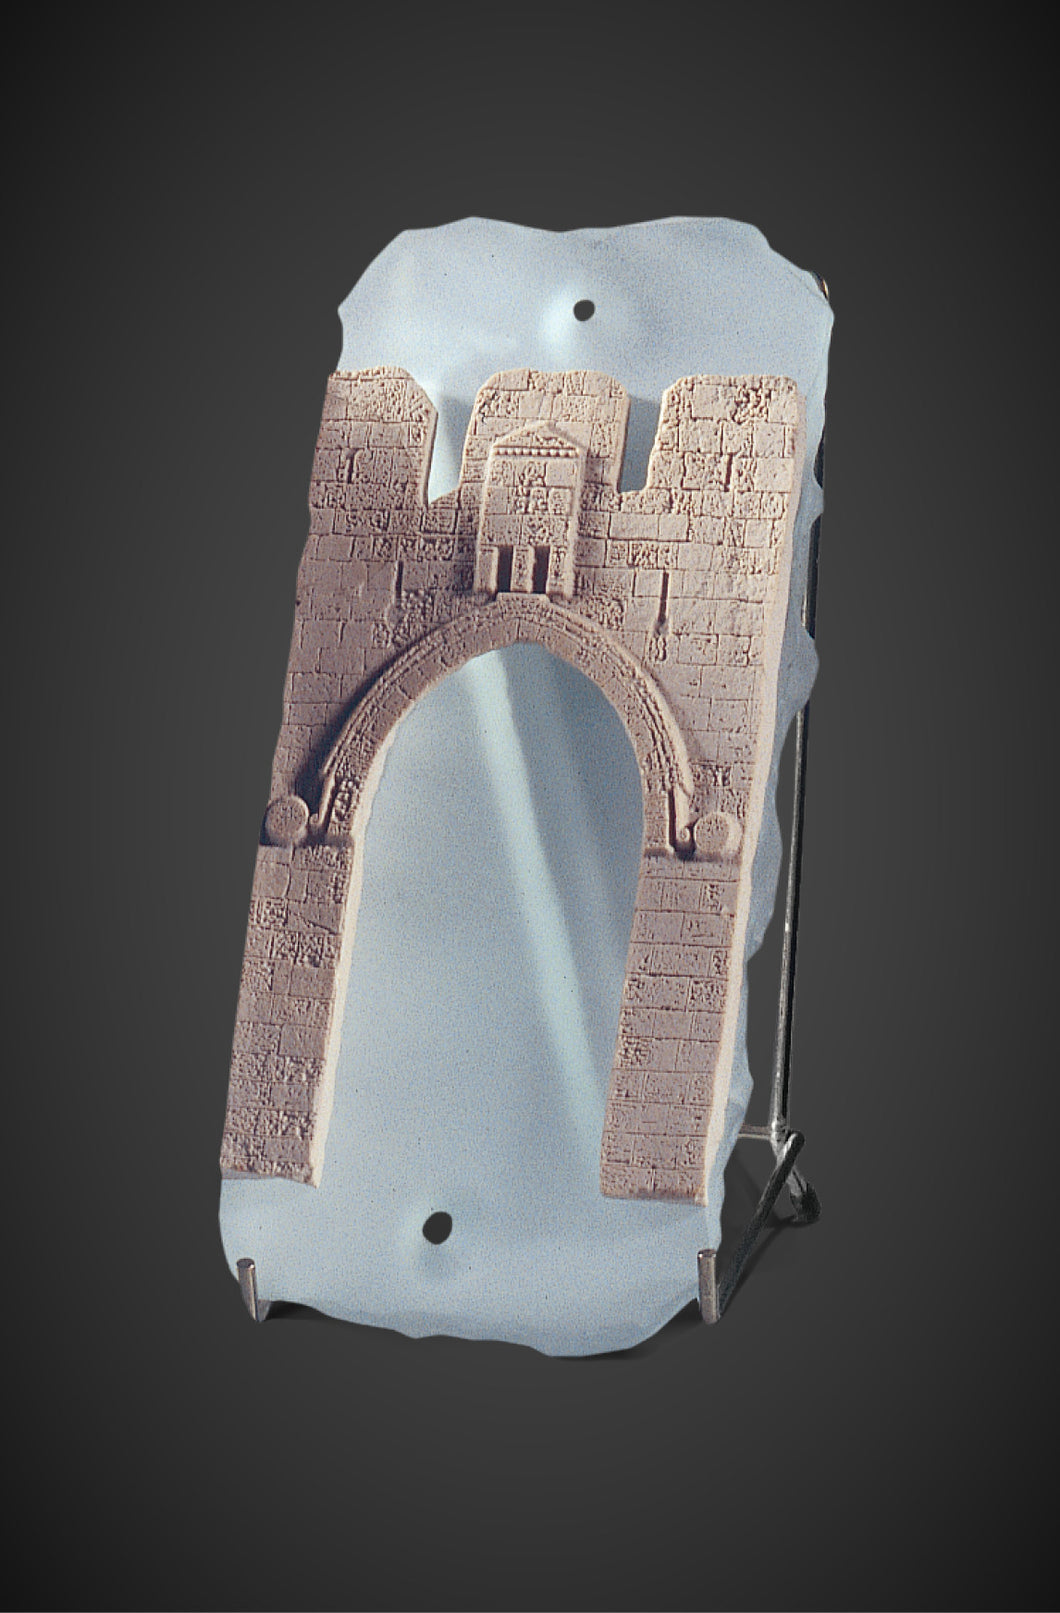 The Jerusalem Gate Mezuzah